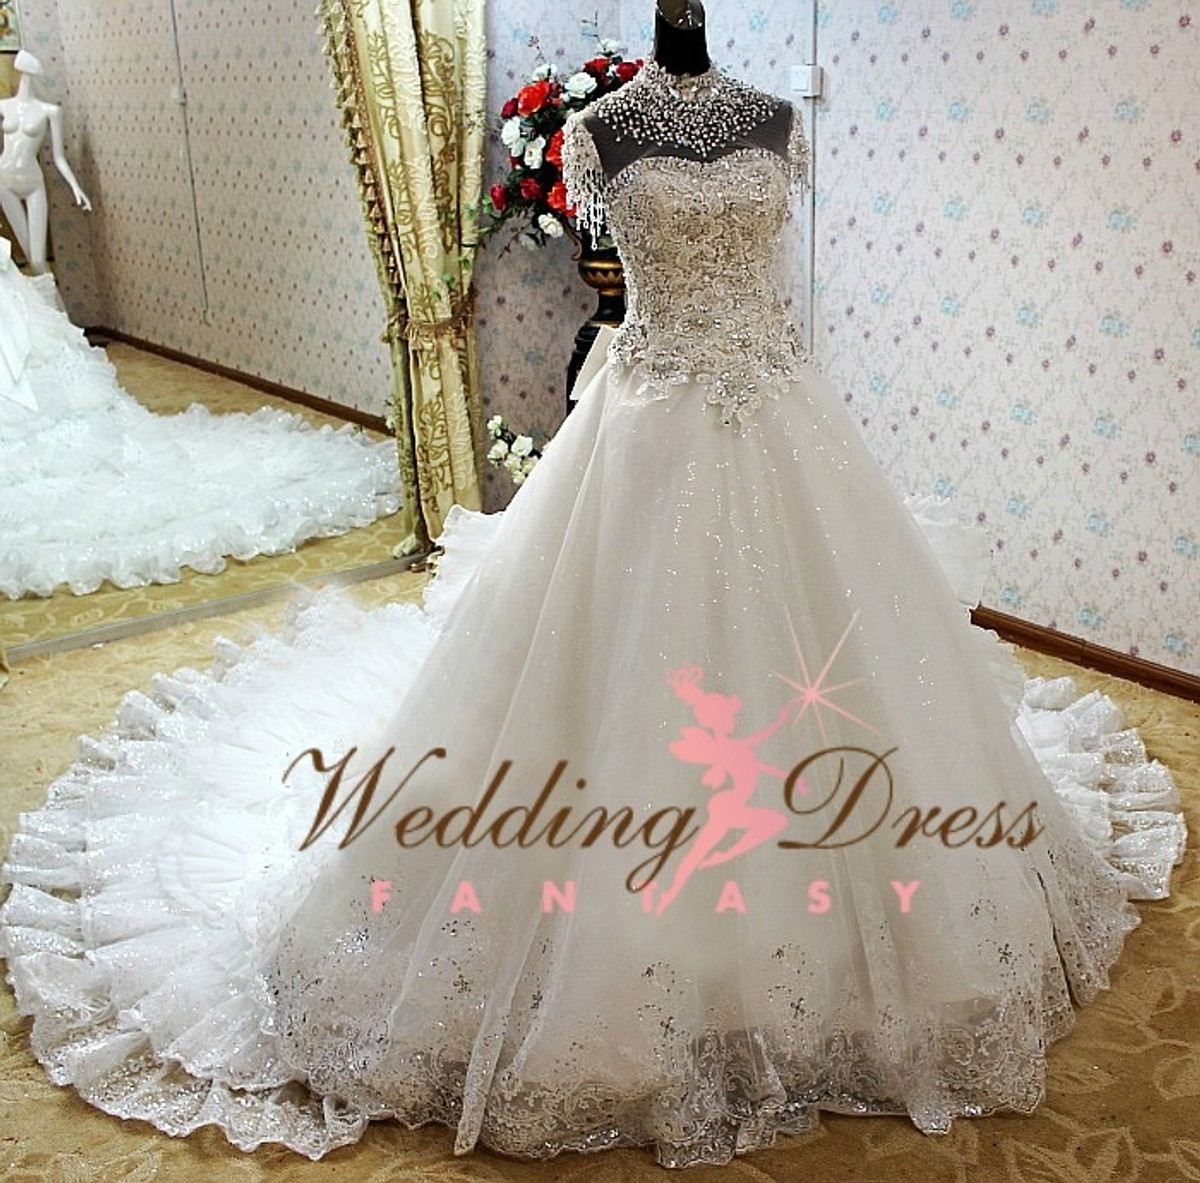 Gypsy wedding dress and irish traveller wedding dress for Big gypsy wedding dresses for sale